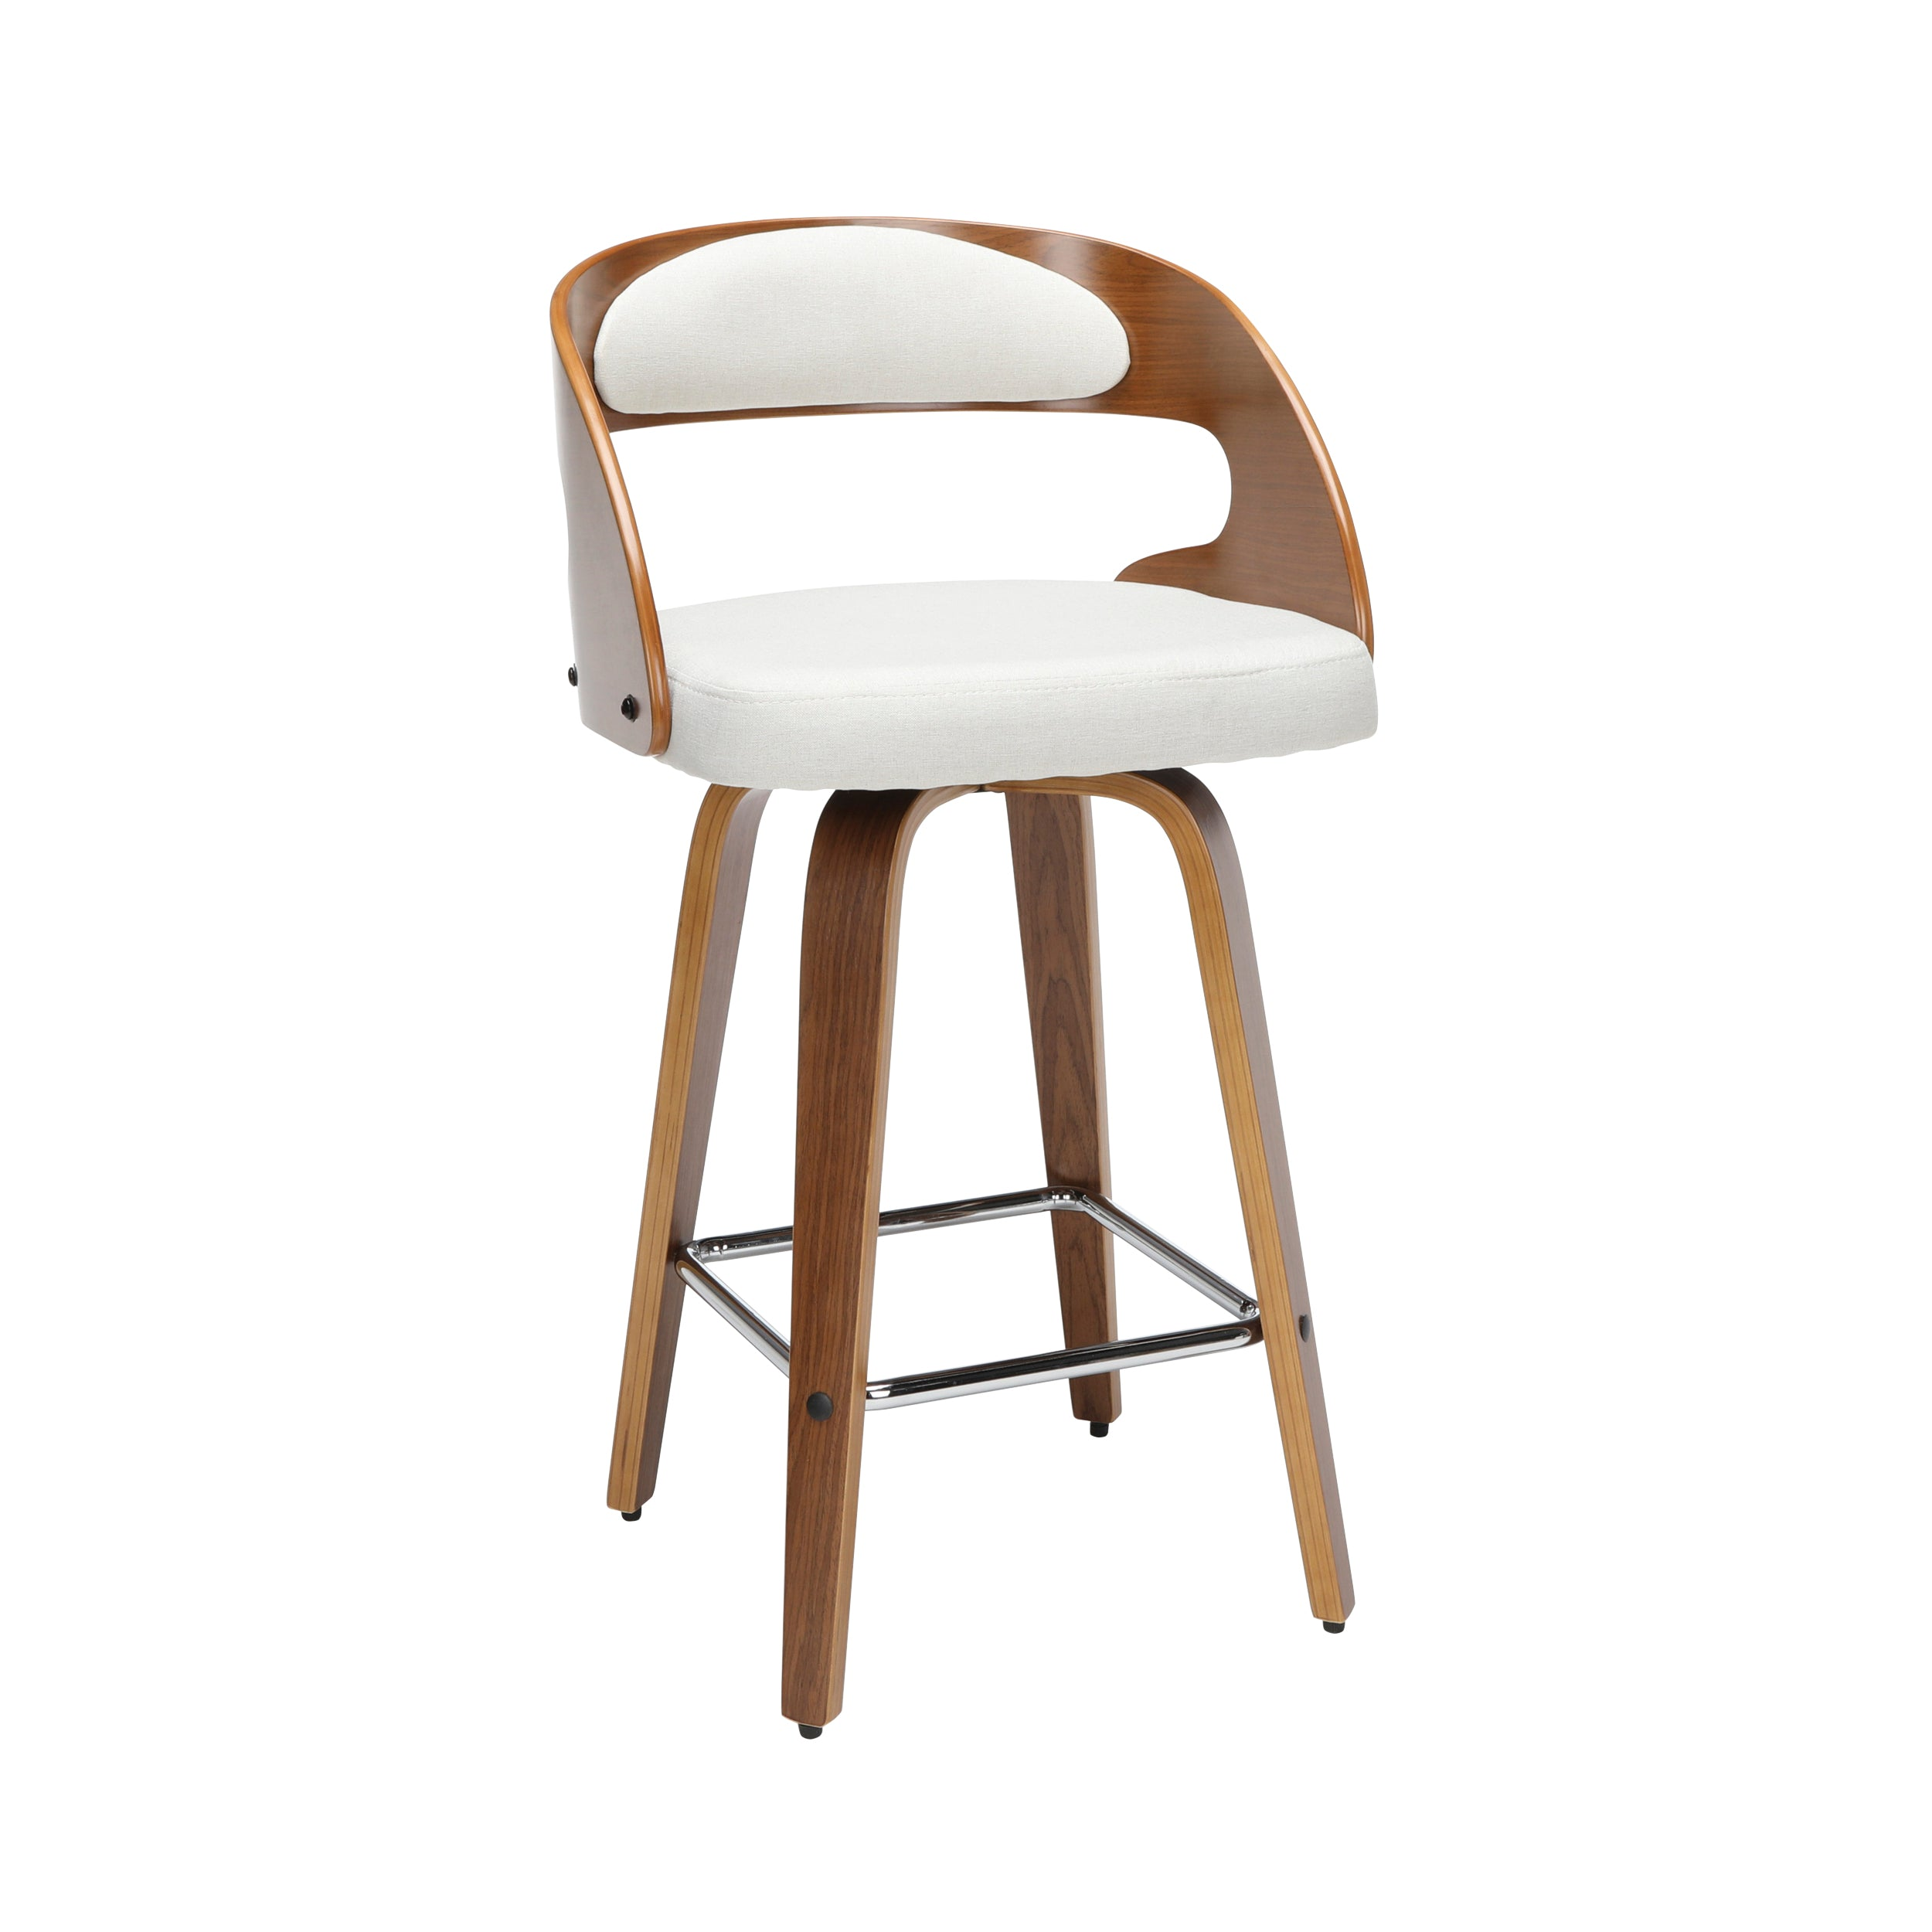 "26"" Bentwood Frame Swivel Seat Stool with Fabric Back & Seat Cushion"